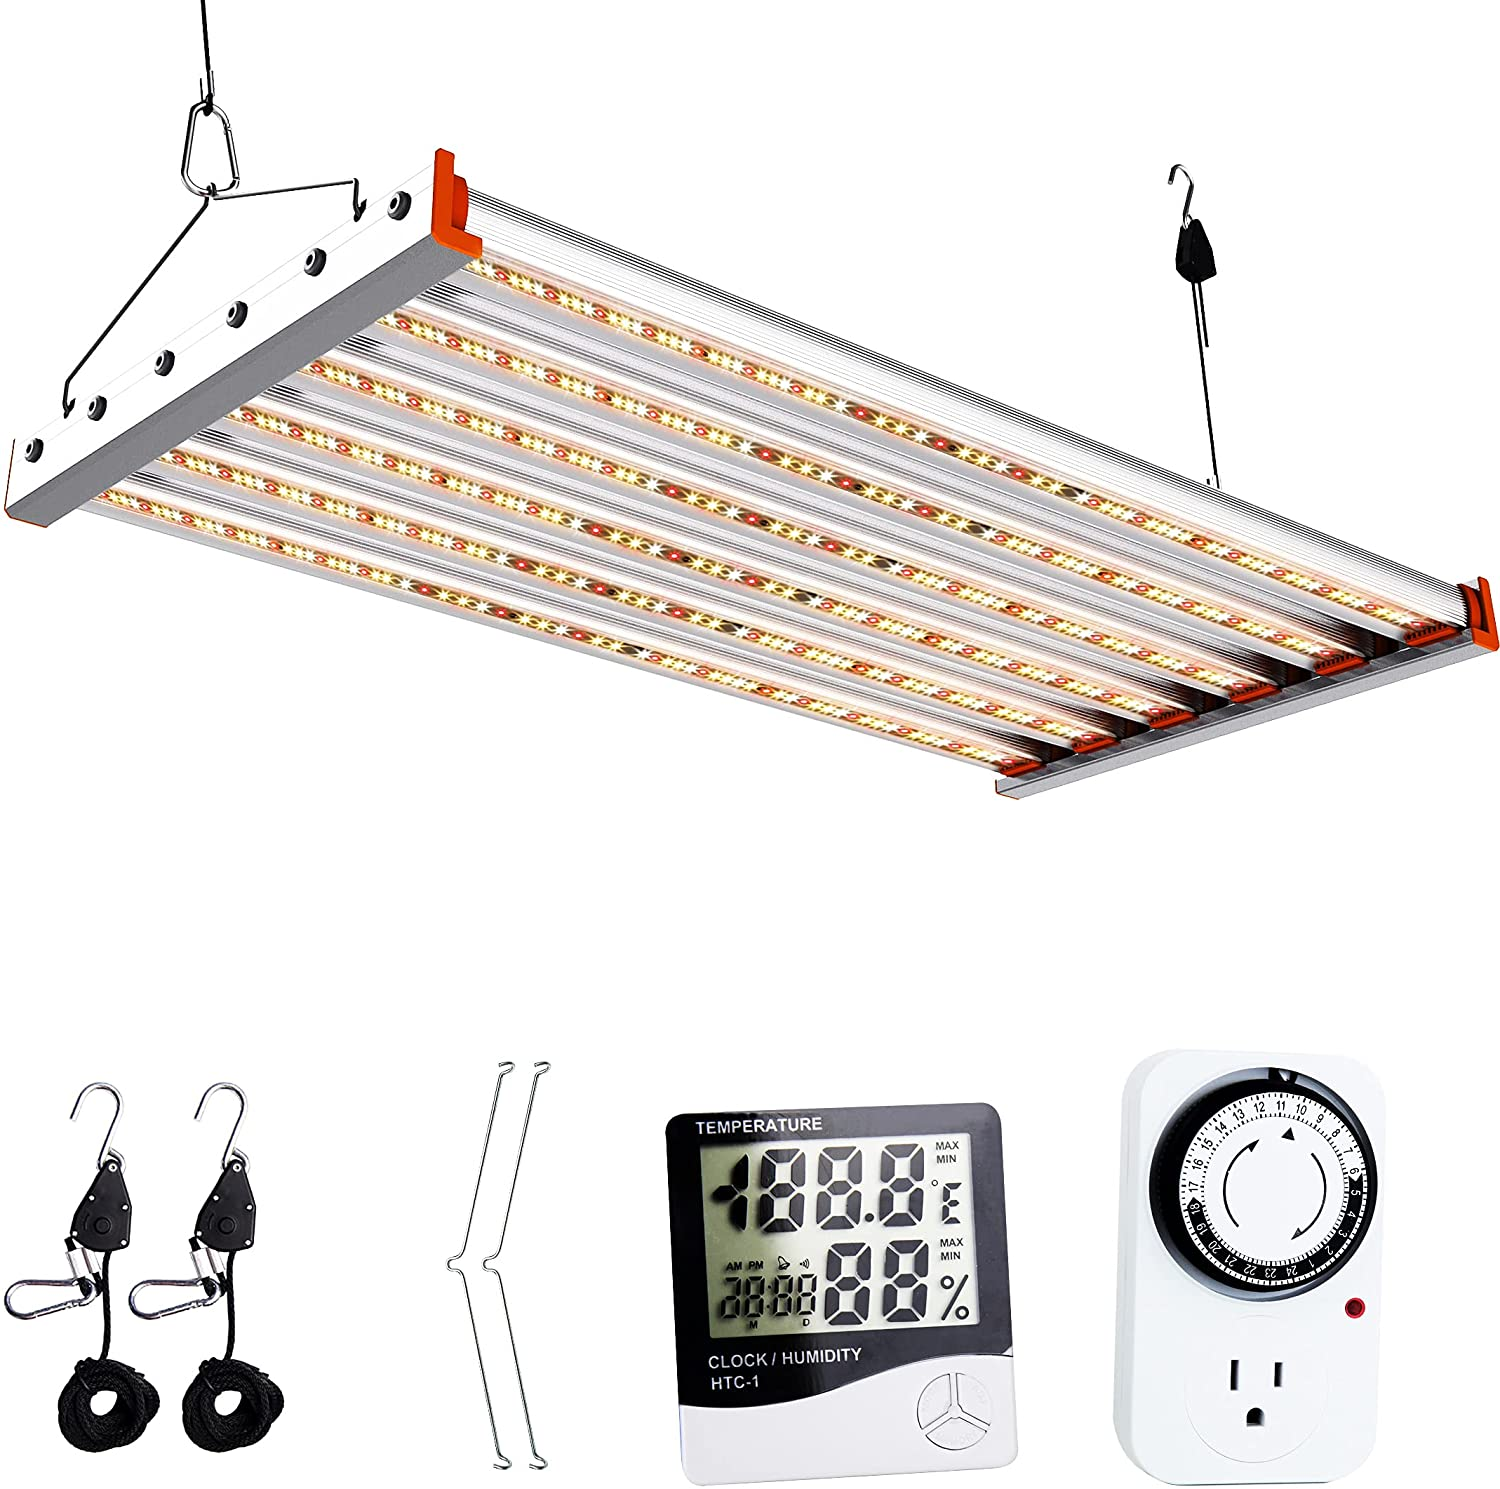 ACKE ALP-400W LED Grow Light 5x5 Veg Mail Selling and selling order for Full Stage Coverage Spe